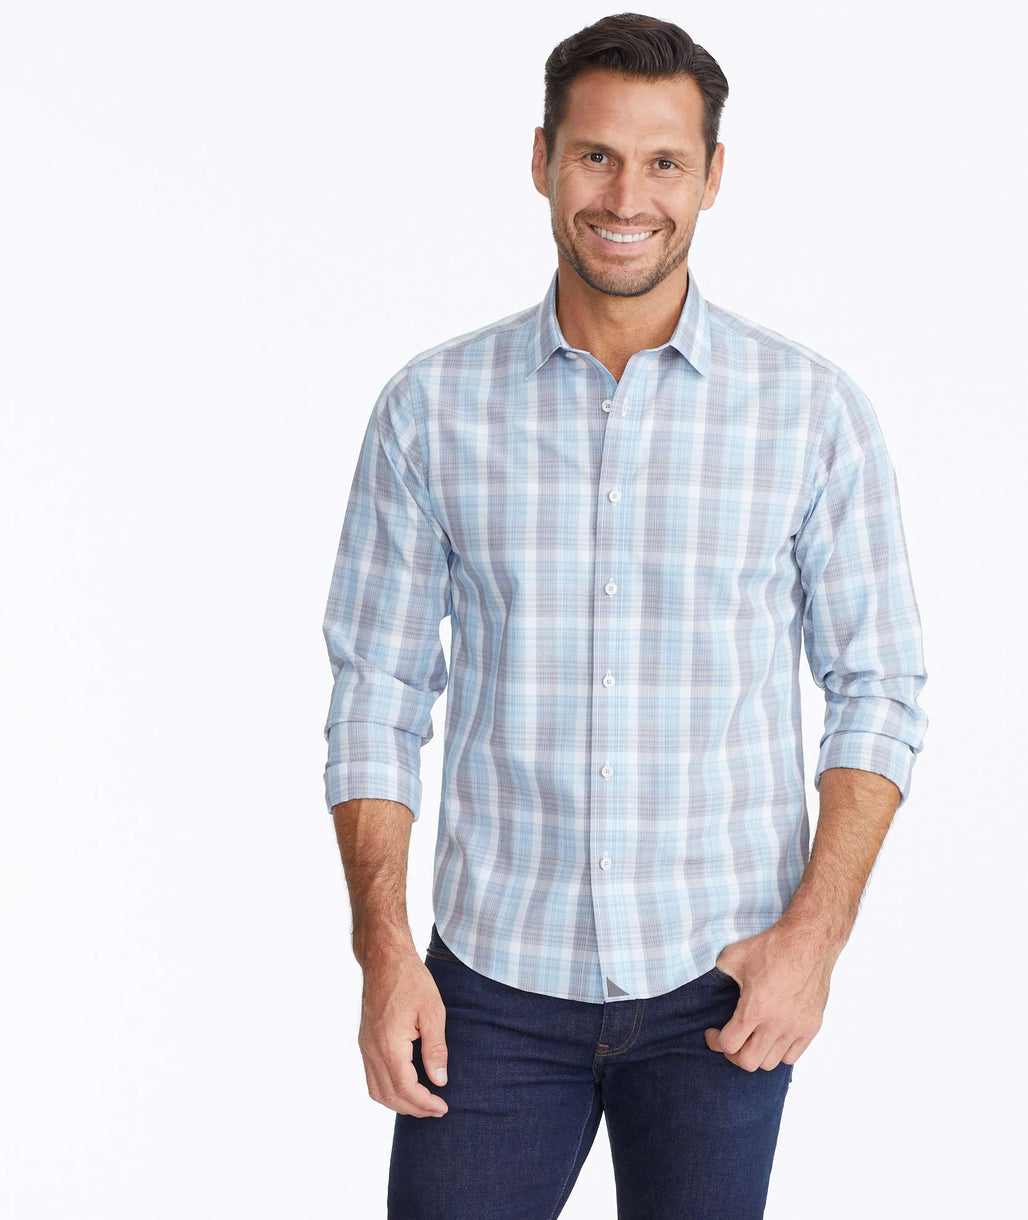 Model wearing a Wrinkle-Free Collins Shirt